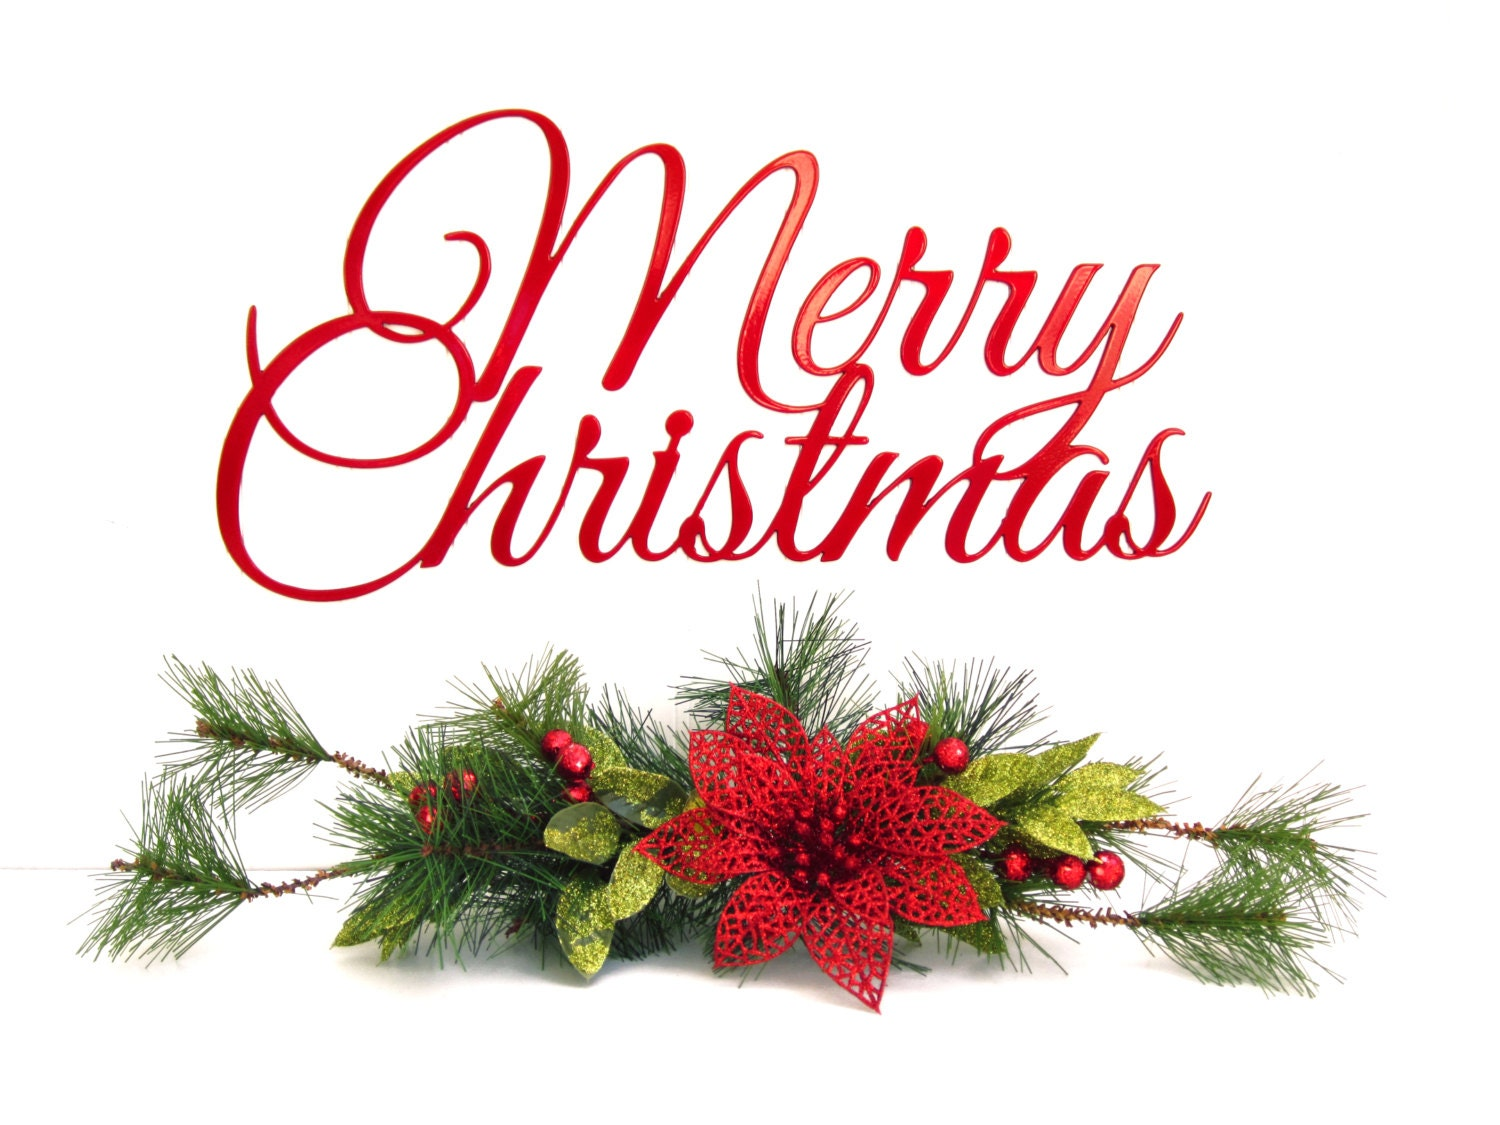 Merry christmas script metal sign red